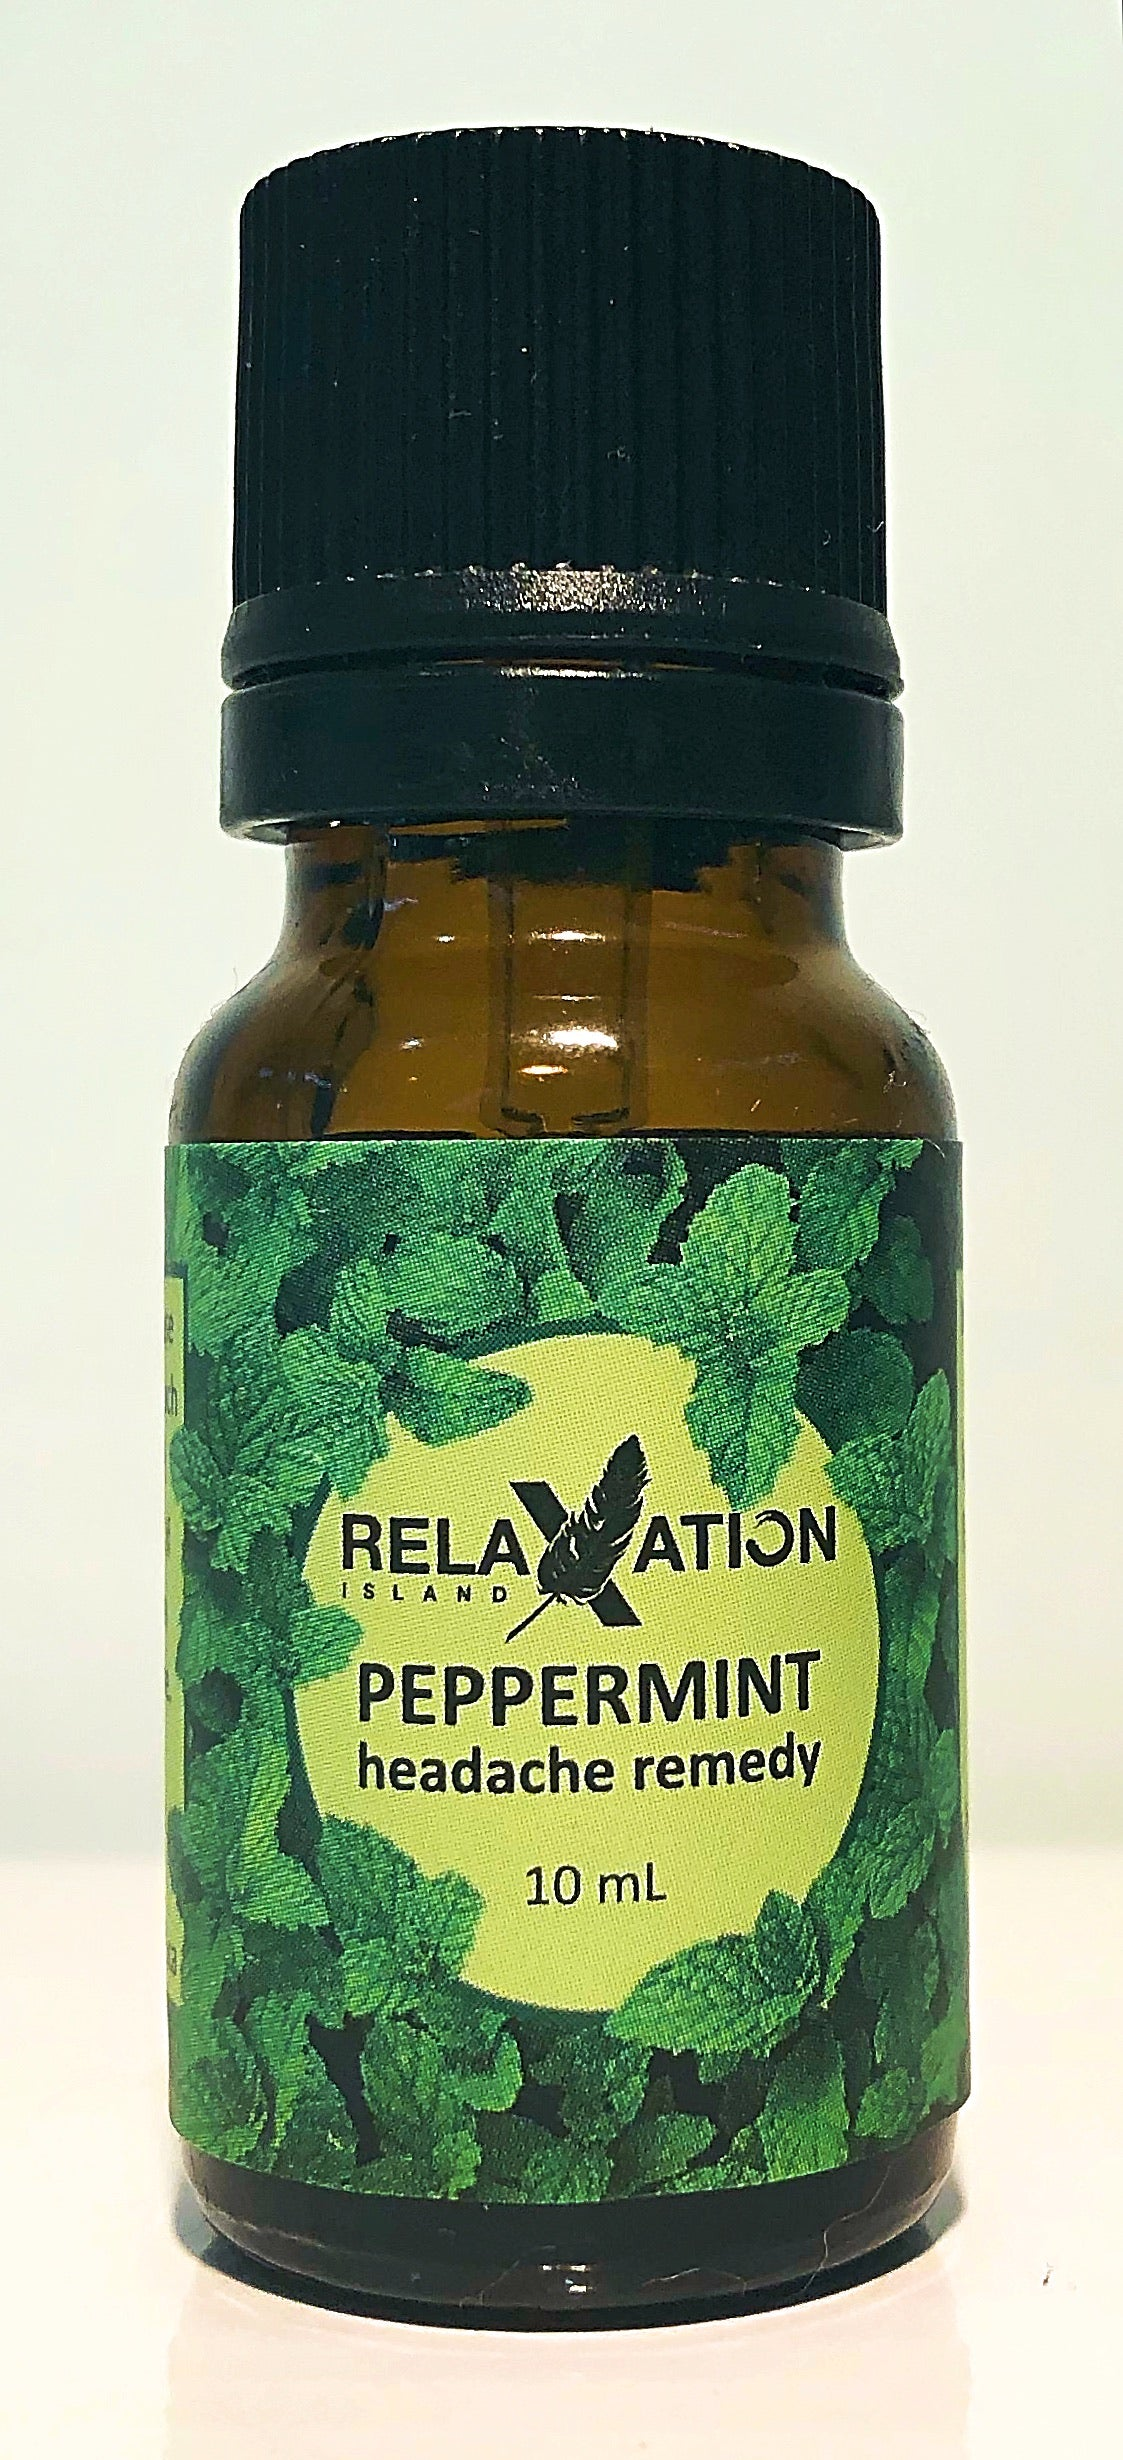 Peppermint Rescue ®-Headache Remedy- Pure Essential oil Blend 10ml-Relaxation Island®